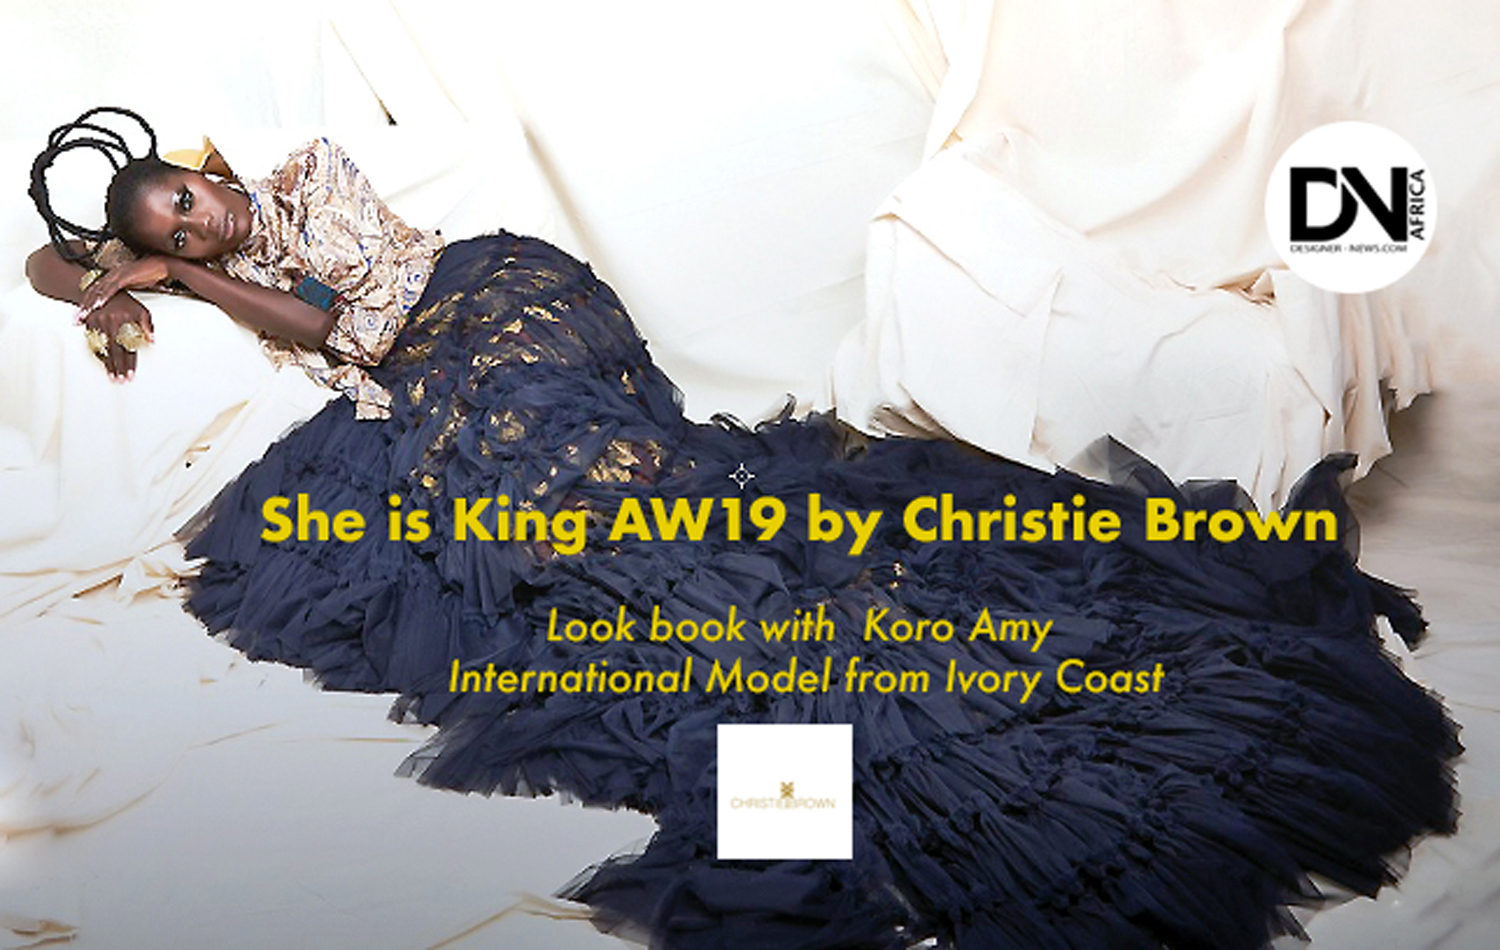 AFRICAN FASHION STYLE MAGAZINE - She is King AW19 by Christie Brown by Owner & Founder Aisha-Obuobi - Look book with  Koro Amy International Model from Ivory Coast - Photographer DAN NGU - Media Partner DN AFRICA - STUDIO 24 NIGERIA - STUDIO 24 INTERNATIONAL - Ifeanyi Christopher Oputa MD AND CEO OF COLVI LIMITED AND STUDIO 24 - CHEVEUX CHERIE and CHEVEUX CHERIE STUDIO BY MARIEME DUBOZ- Fashion Editor Nahomie NOOR COULIBALY